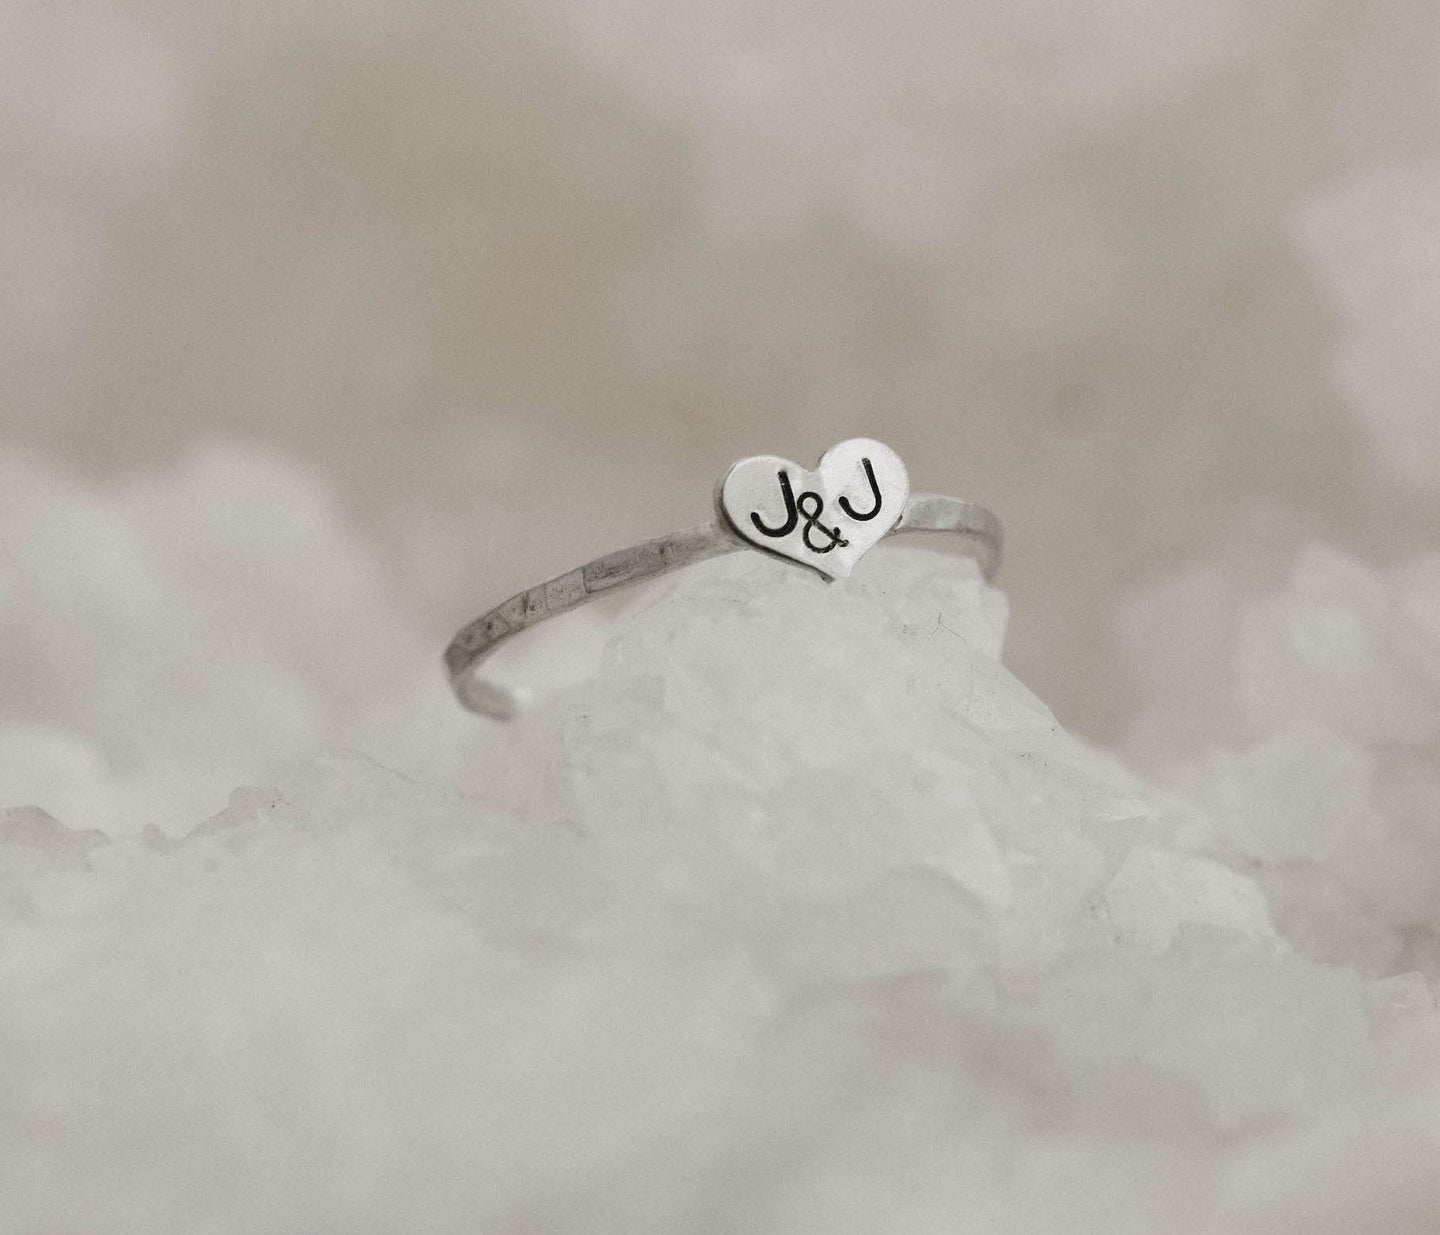 happy cactus brand hand stamped jewelry custom sterling silver initials heart ring textured band silver ring silver textured ring textured heart ring promise ring valentines day gift for her silver stacking ring with initials